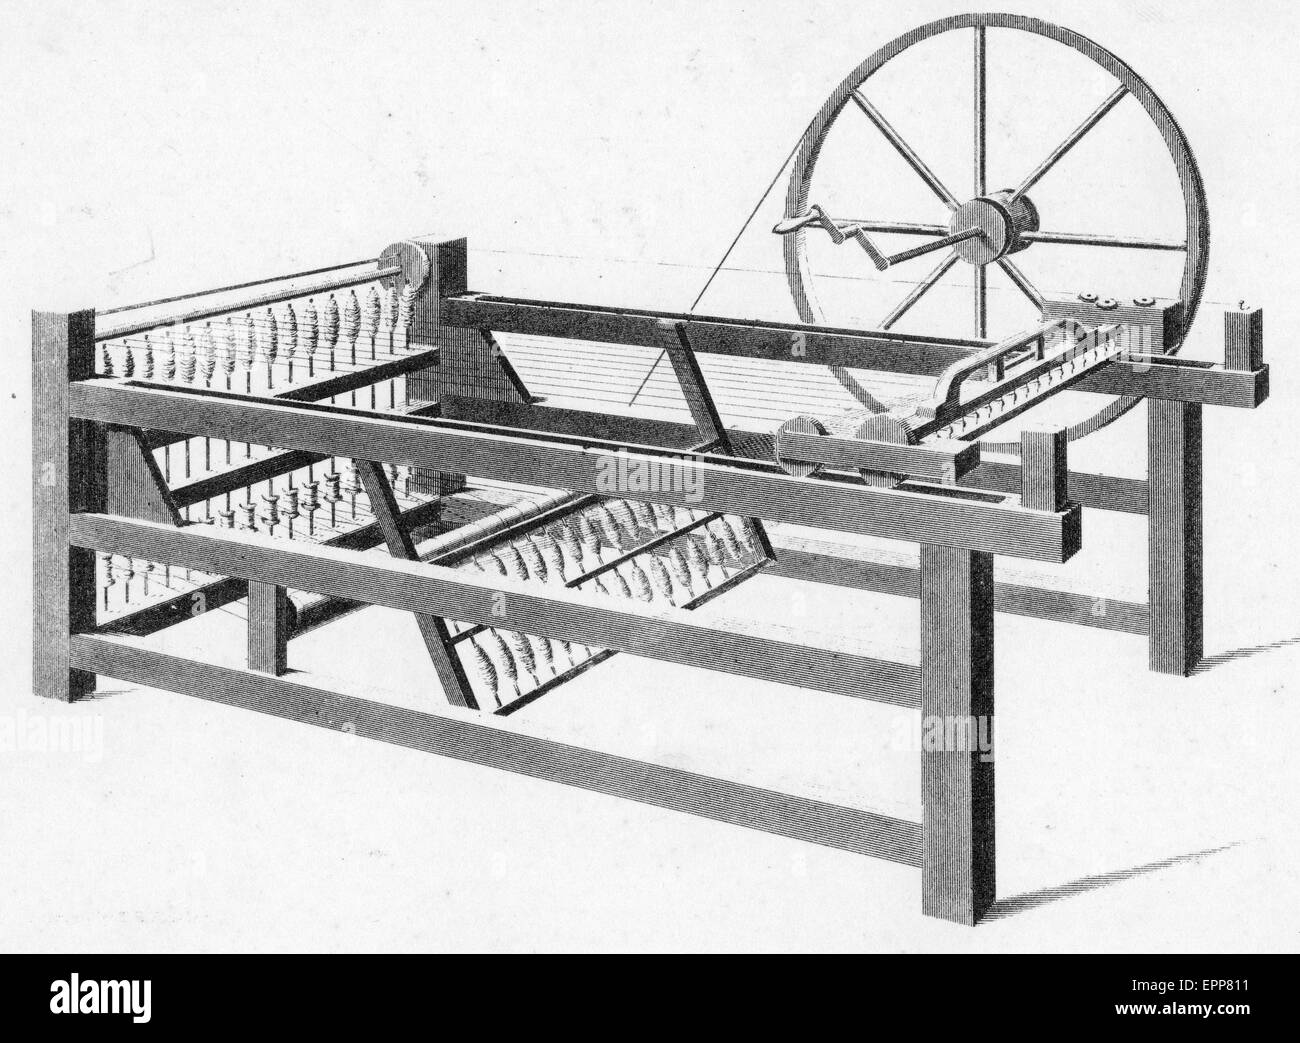 JAMES HARGREAVES' SPINNING JENNY From Baines' History Of